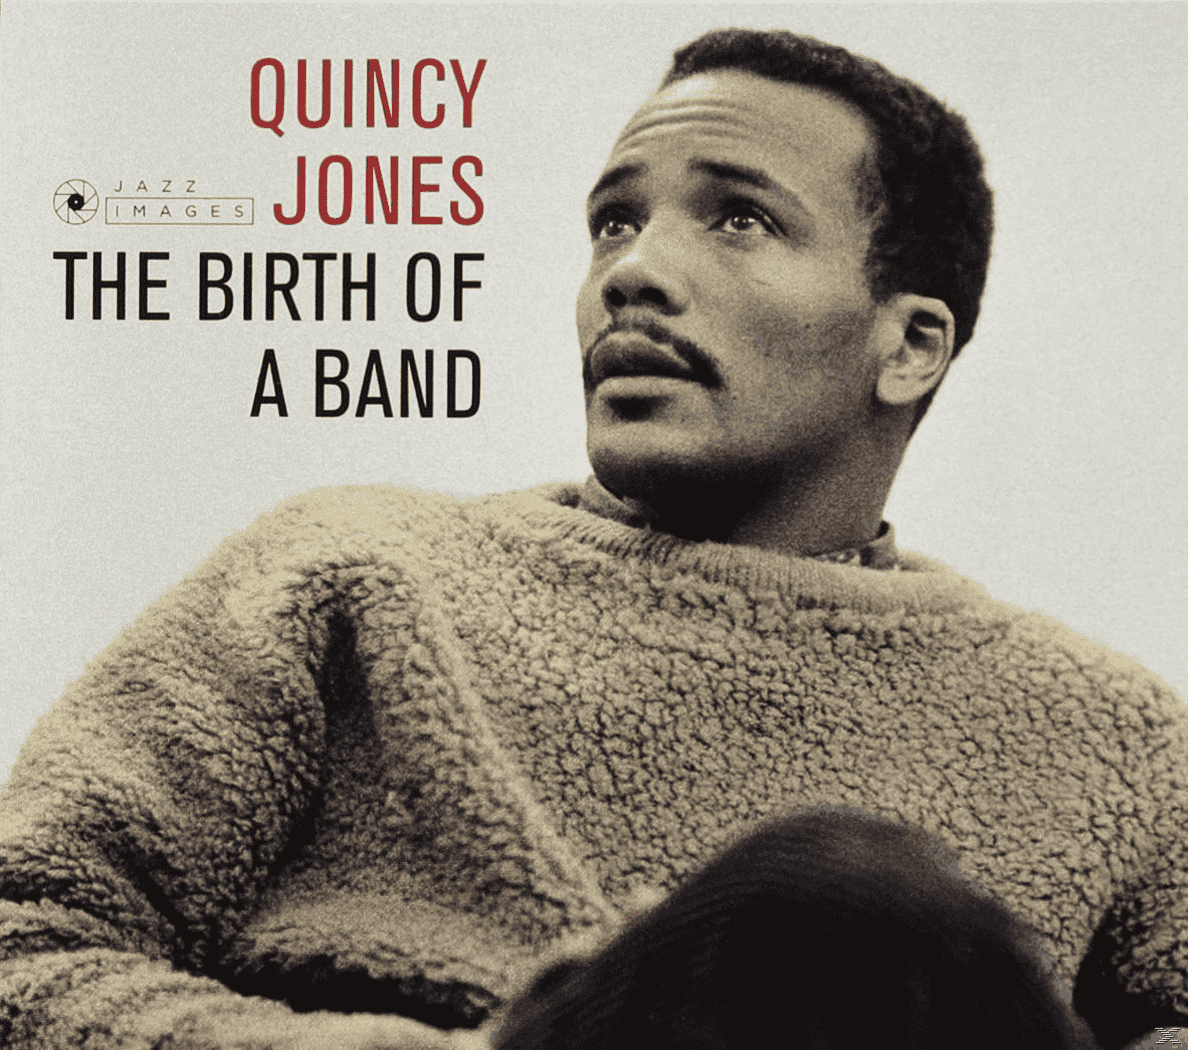 Quincy Jones, Clark Terry, Jimmy Cleveland, Zoot Sims, Benny Golson, Lalo Schifrin, Sweets Edison, Rahsaan Roland Kirk, Jim Hall - The Birth Of A Band - (CD)